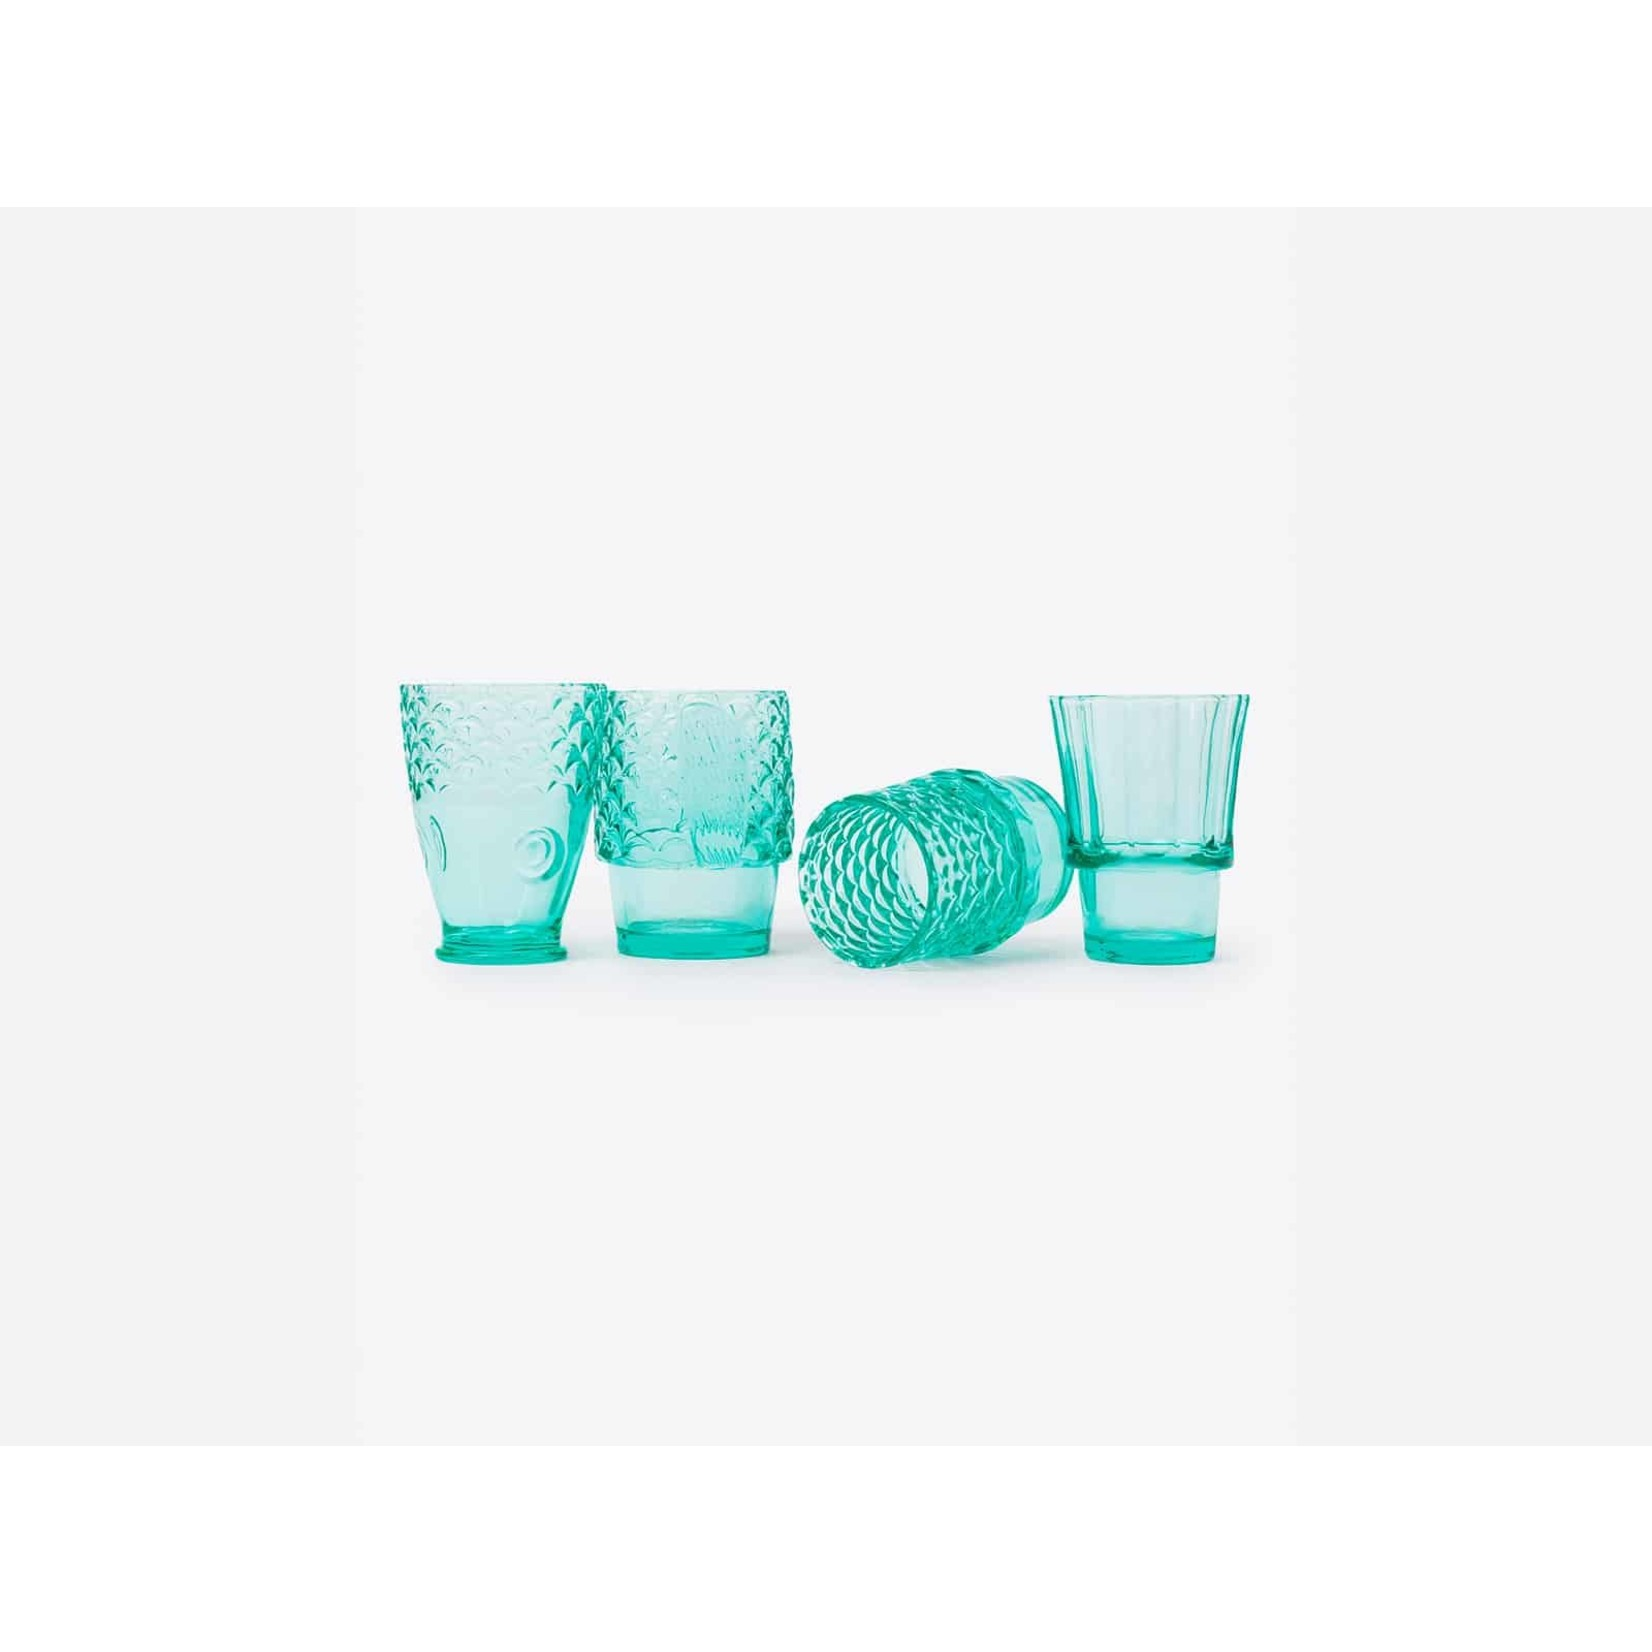 Koifish Stackable Drinking Glasses in Mint